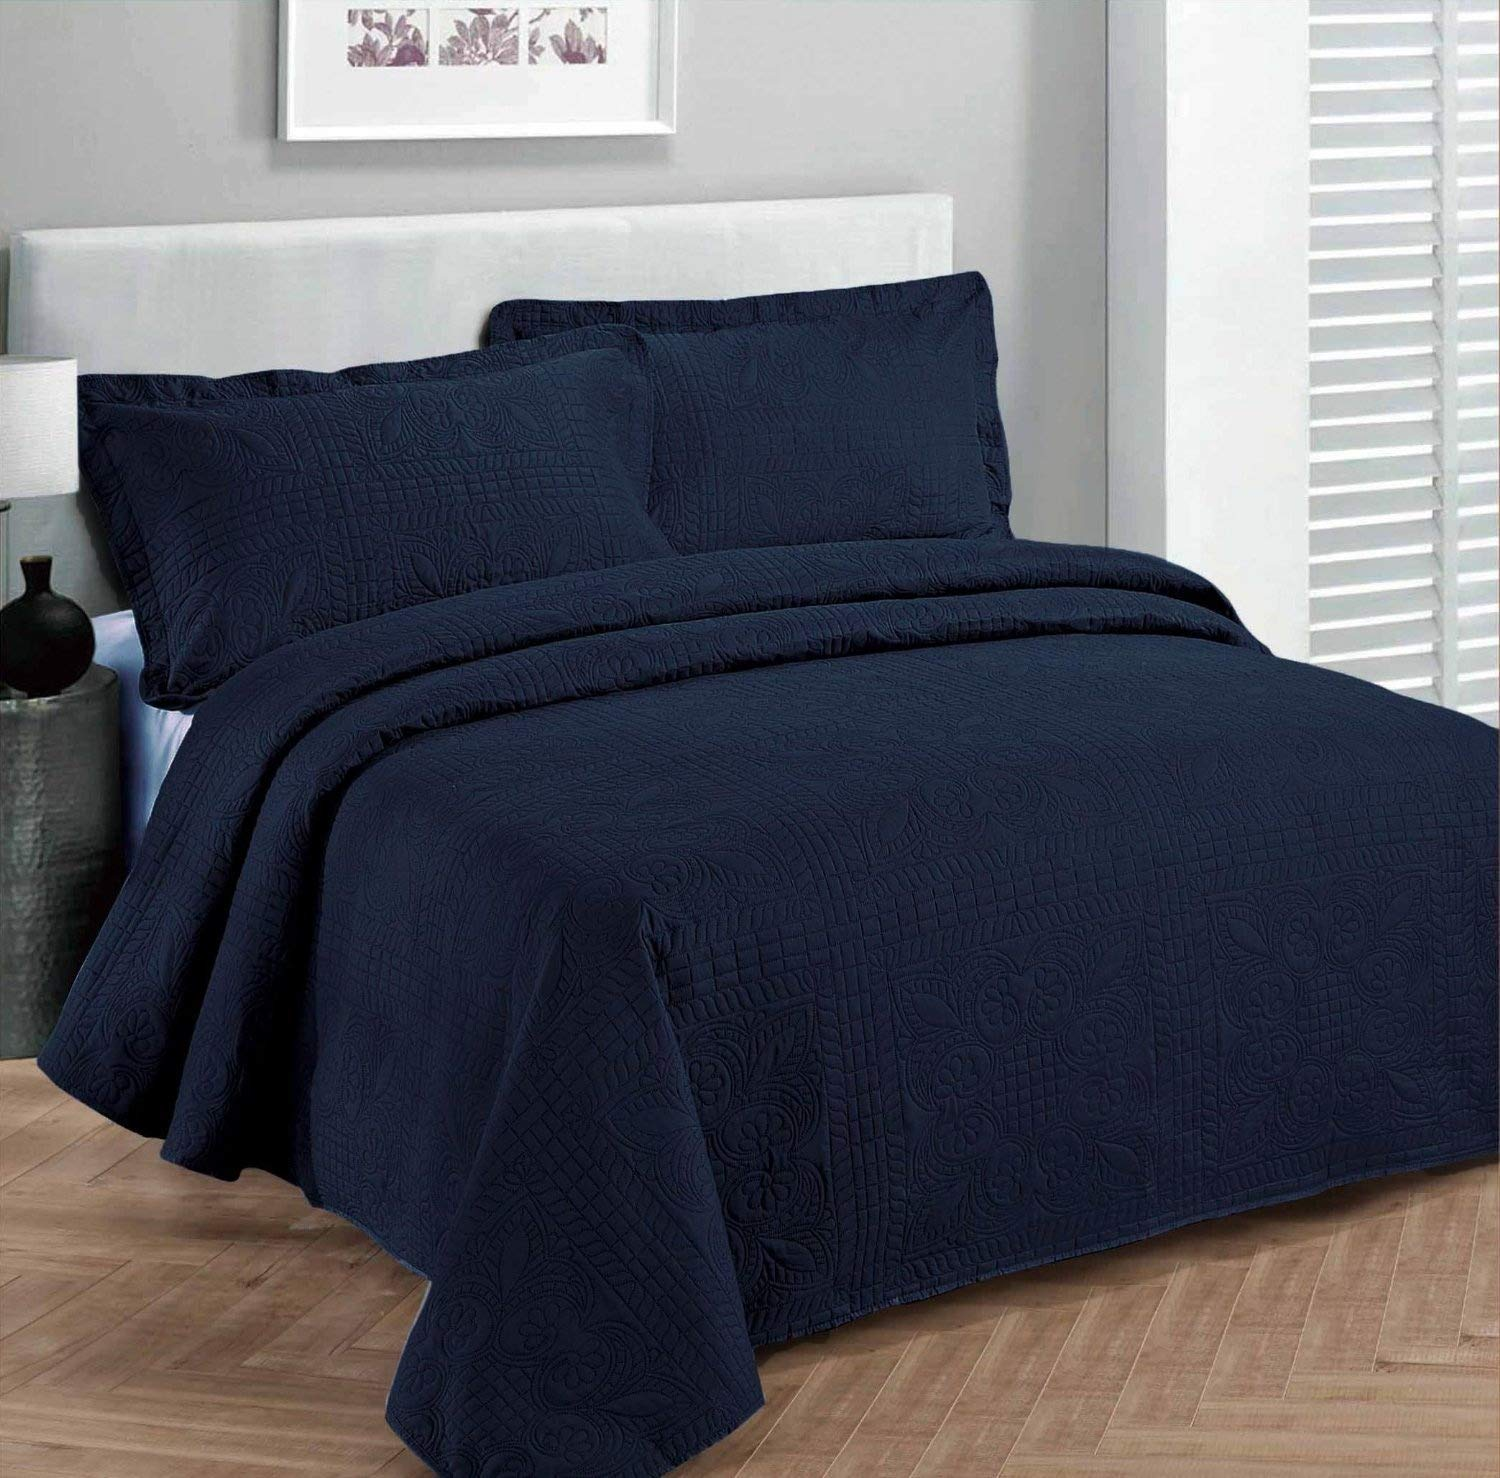 Fancy Collection 2pc Luxury Bedspread Coverlet Embossed Bed Cover Solid Navy Blue Over Size New Twin/Twin xl FANCY LINEN